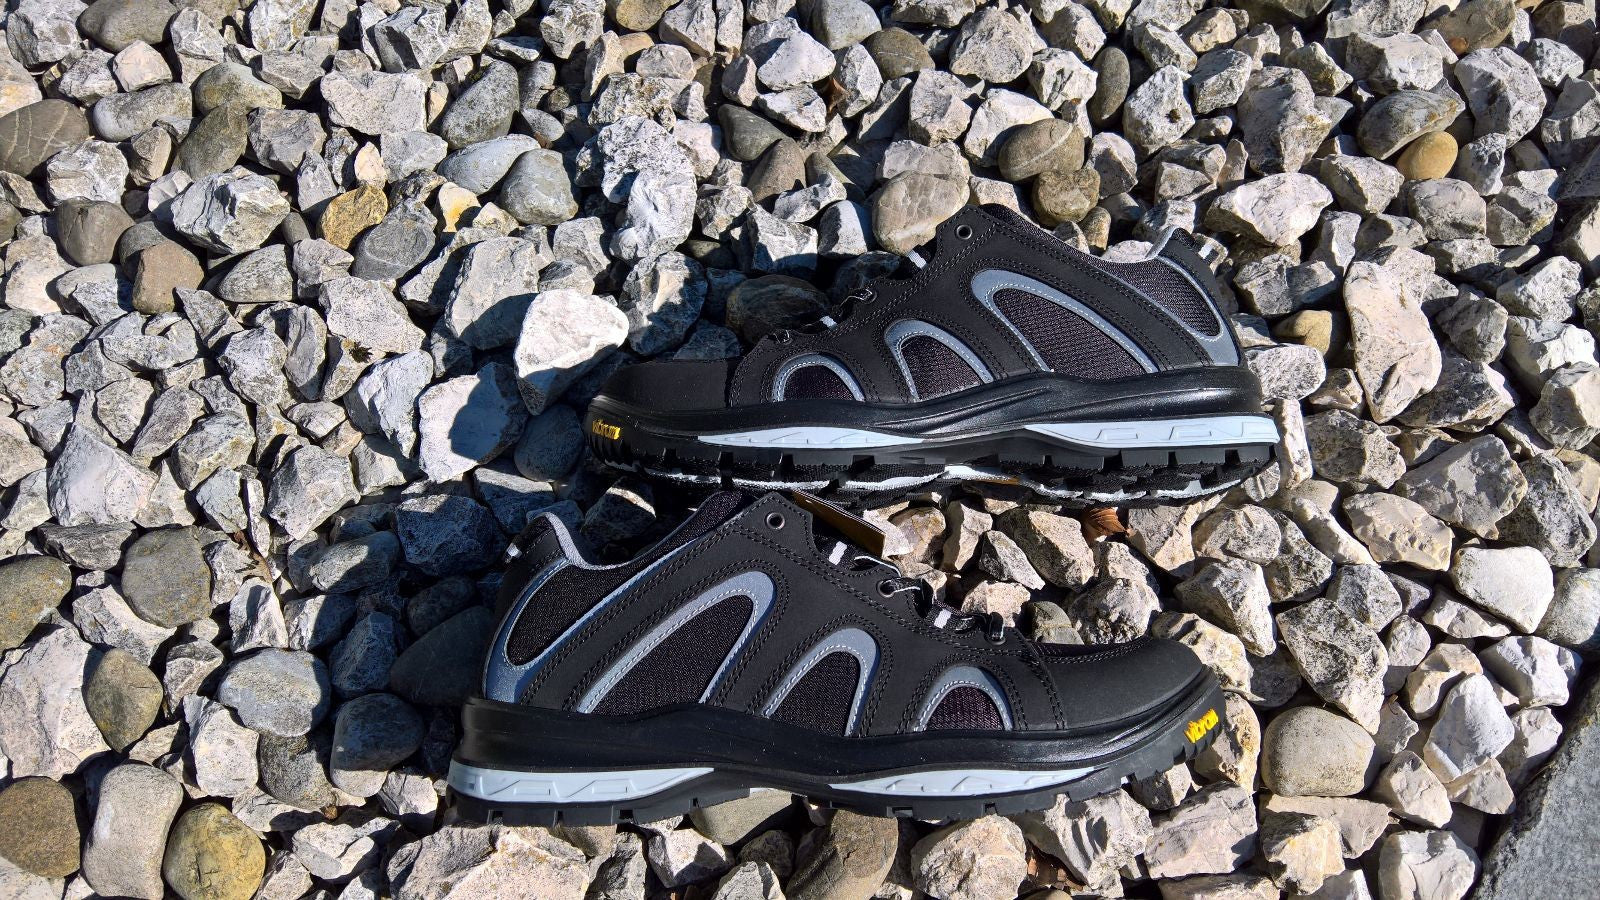 Trekking & Wanderschuh SPEED von Solid Gear